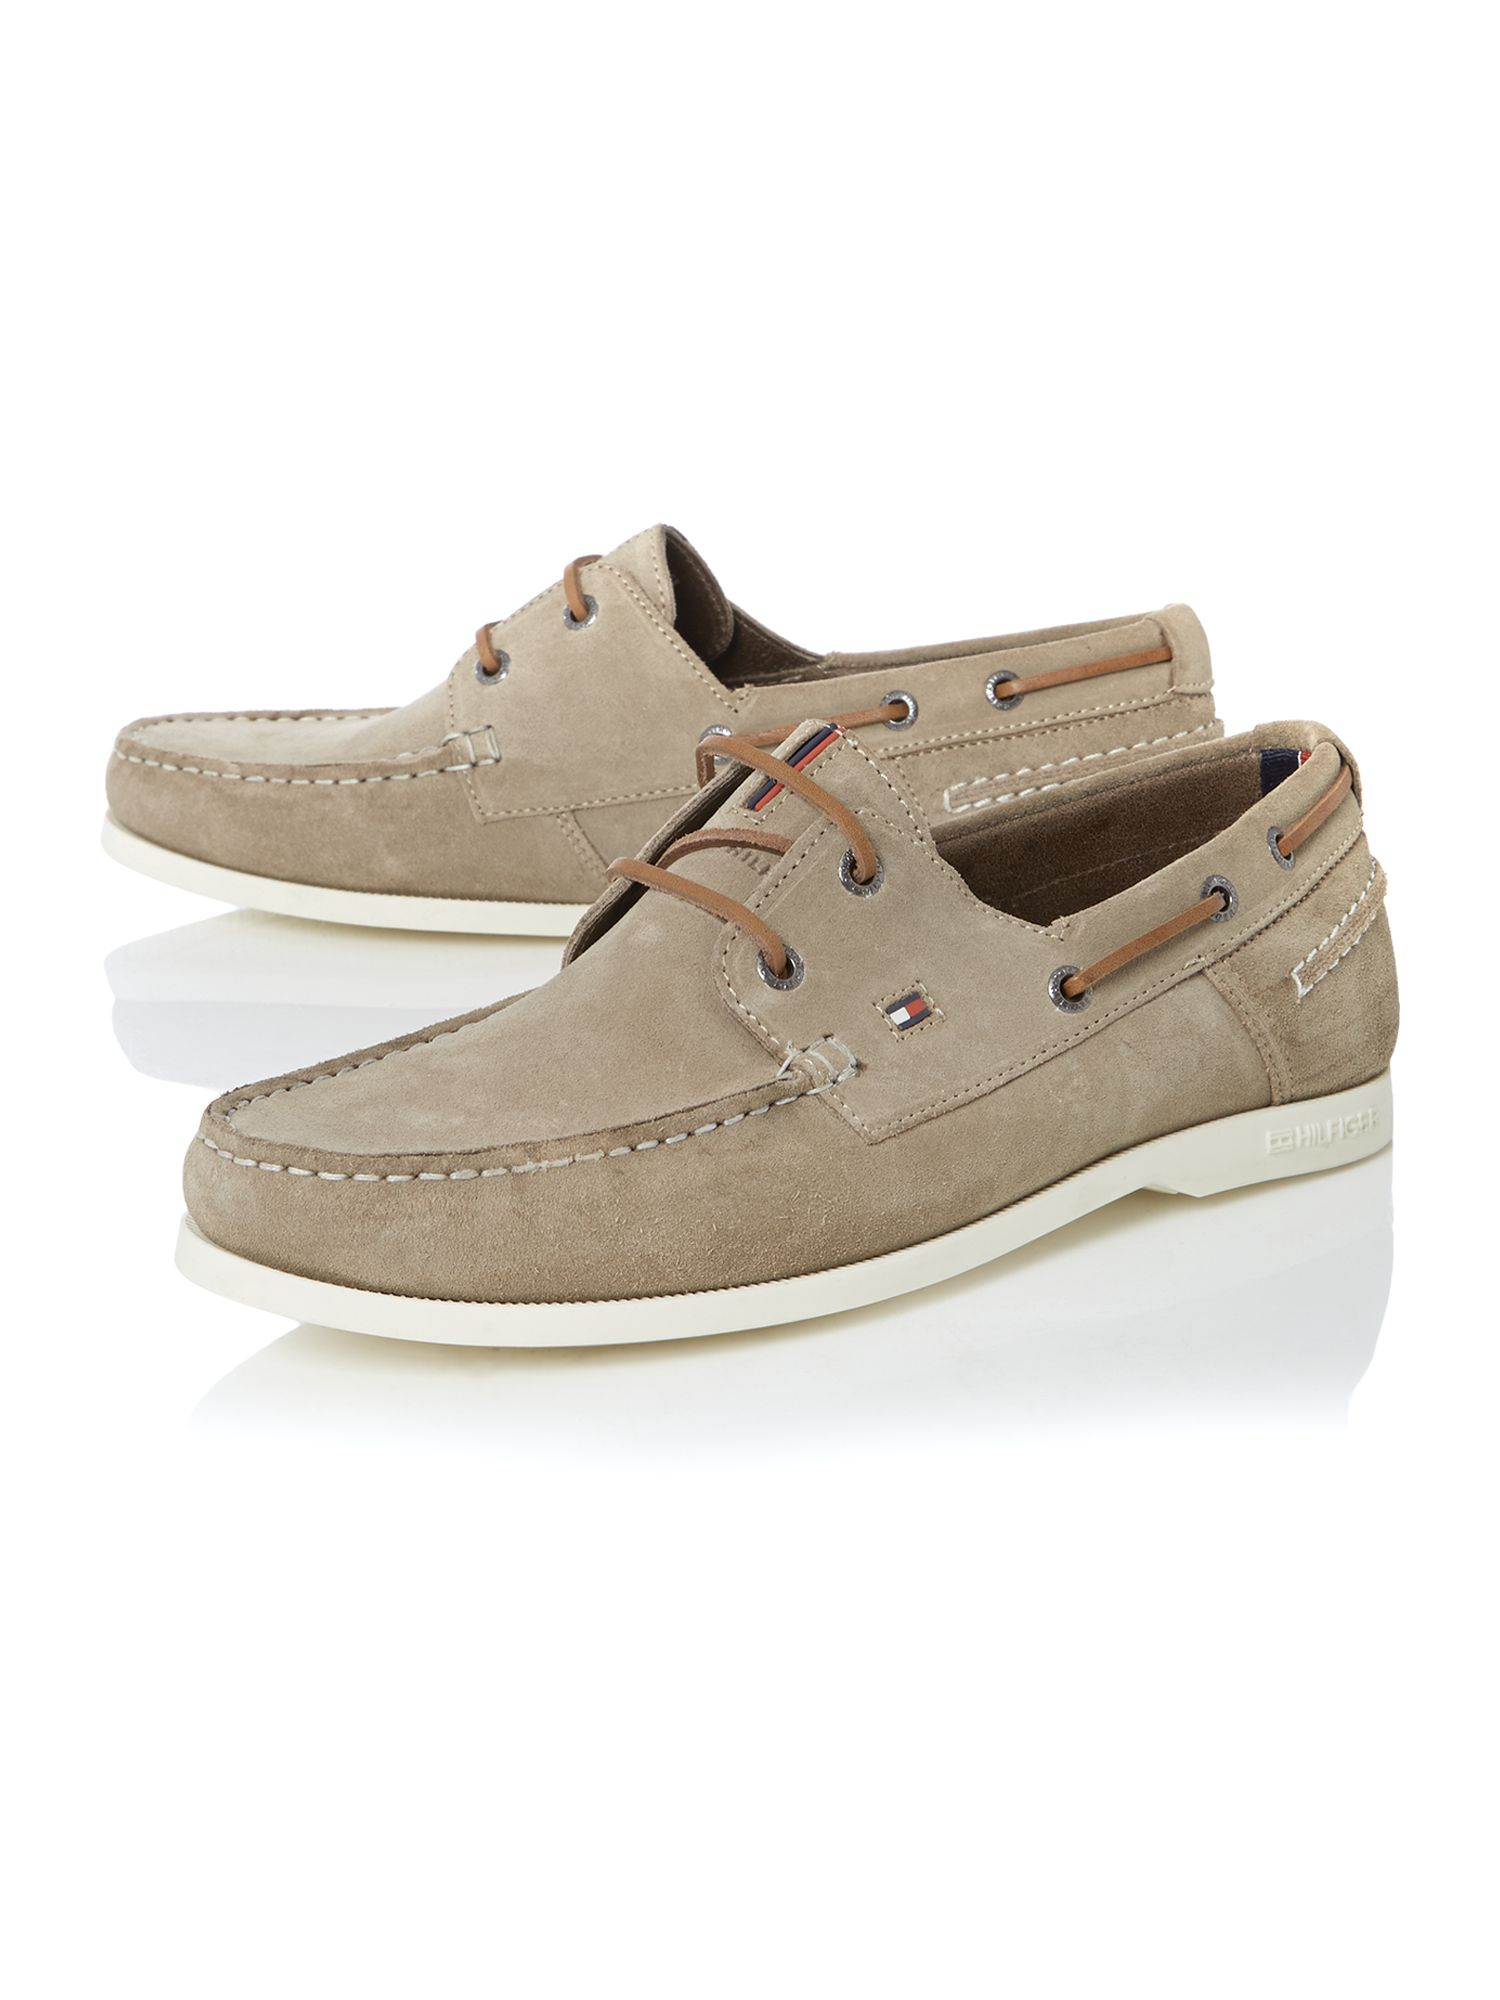 hilfiger chino lace up casual boat shoes in